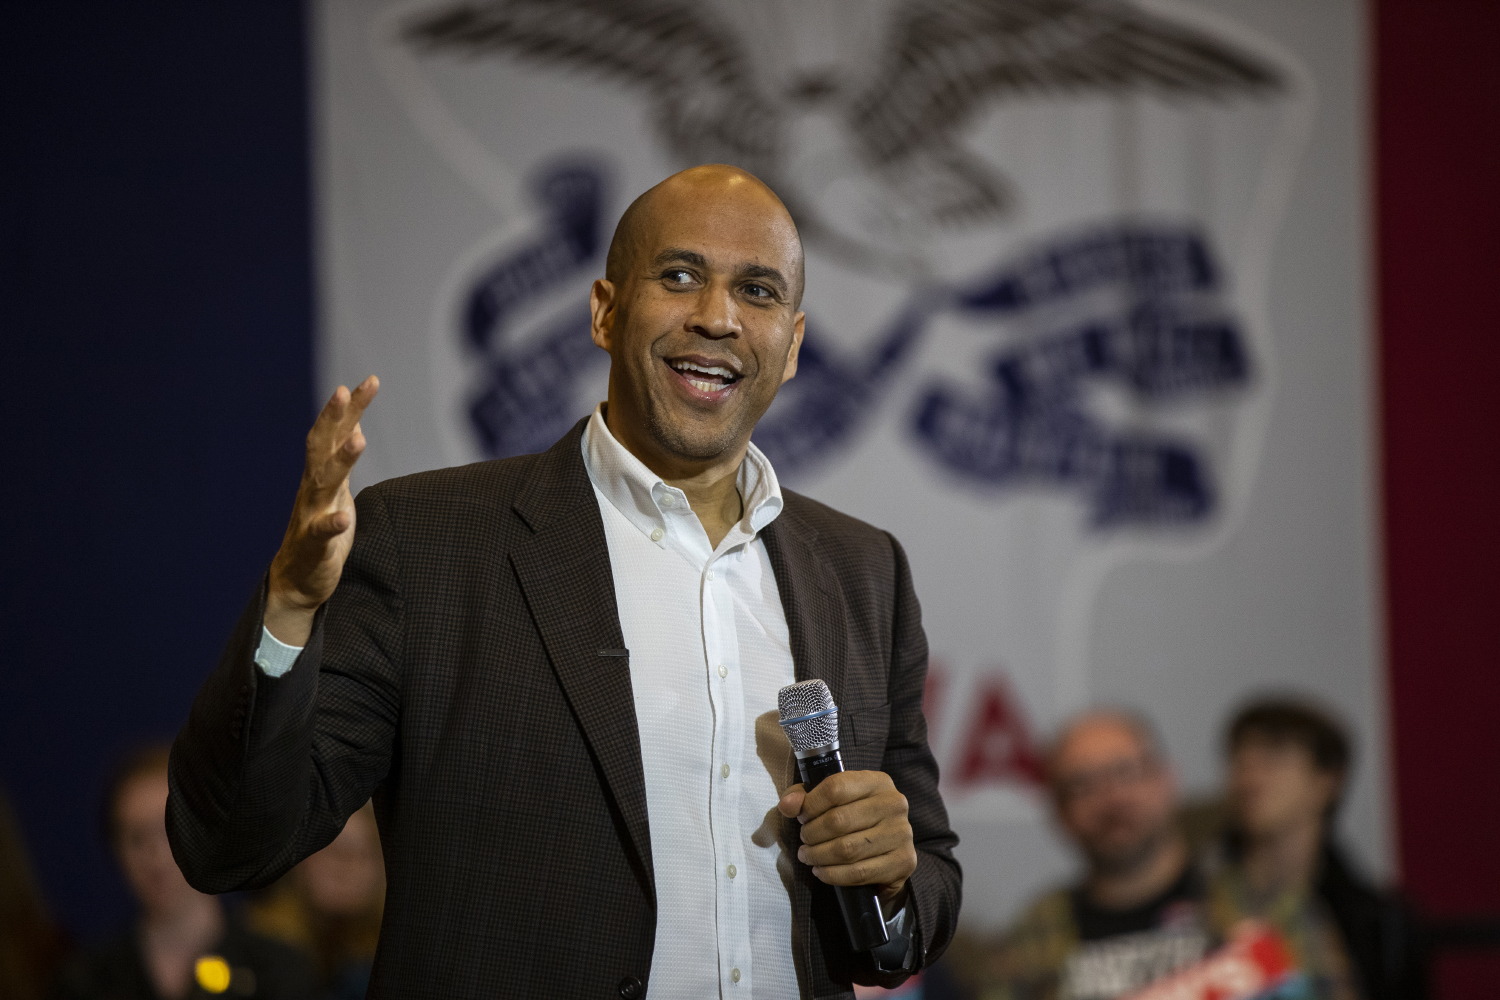 Senator Cory Booker, D-NJ, speaks to an audience during a forum at the Iowa Memorial Union on Monday, October 7, 2019. (Wyatt Dlouhy/The Daily Iowan)